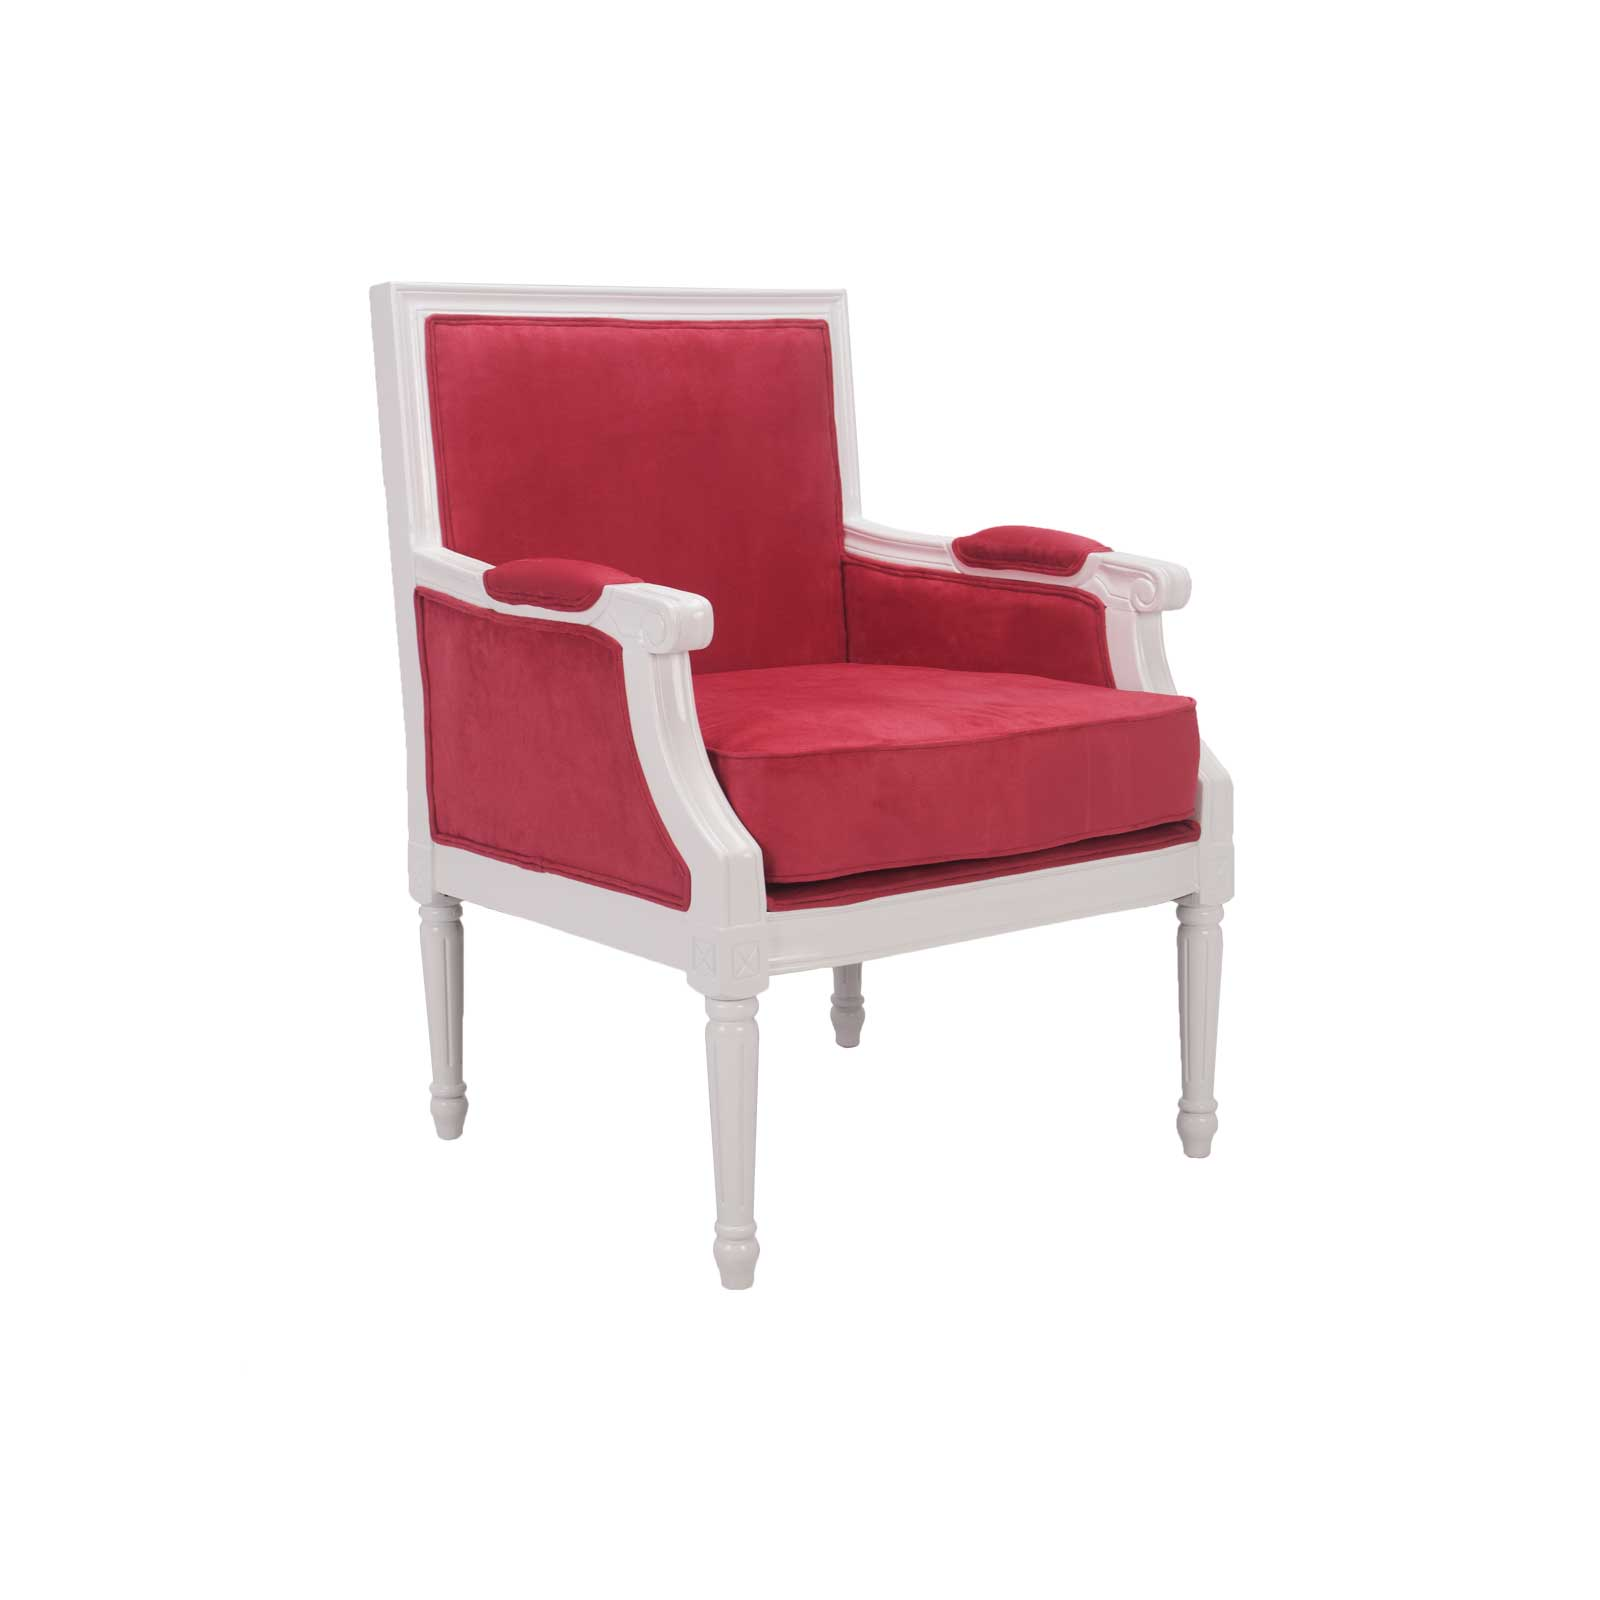 pink club chair outdoor recliner cushions louie vl lounge formdecor